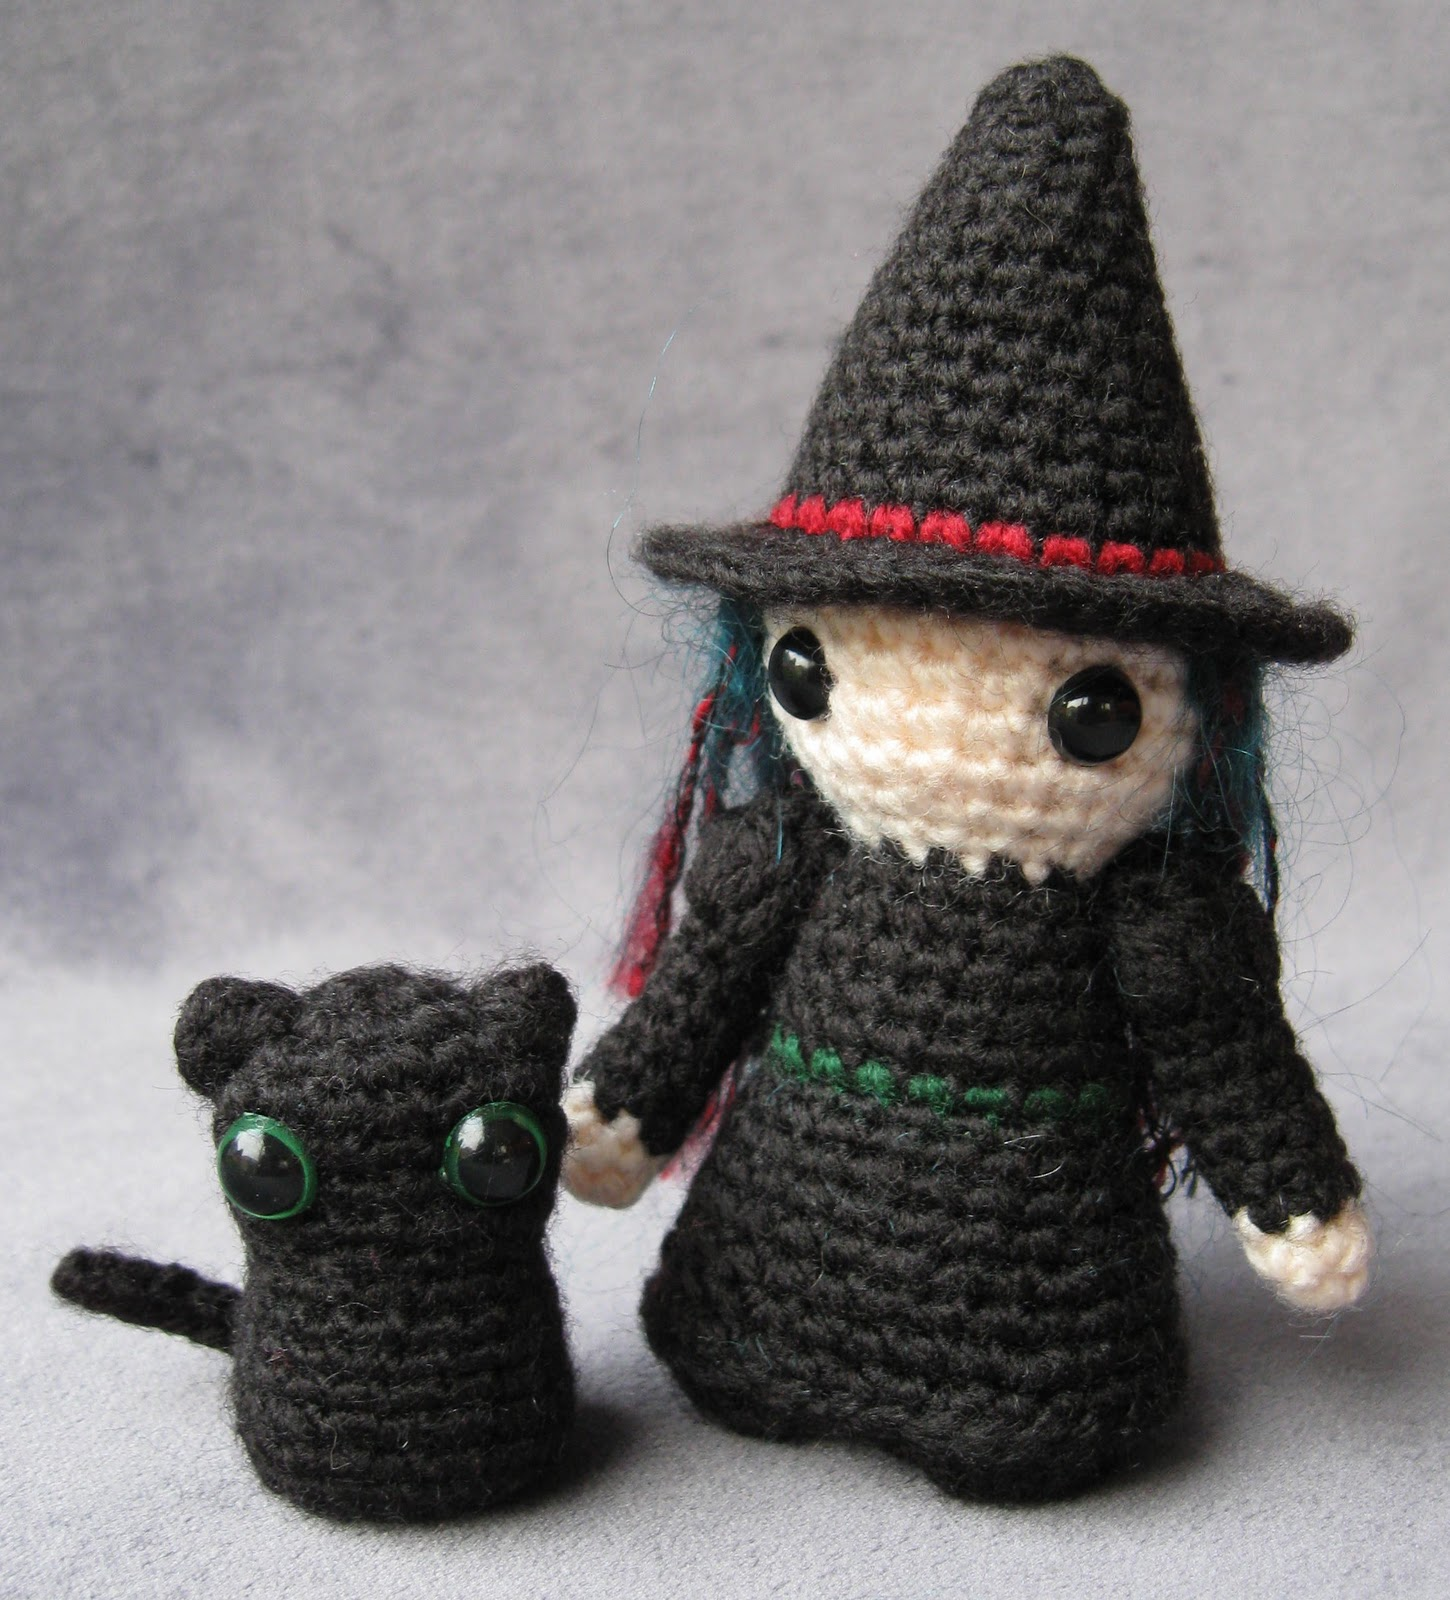 Free Crochet Patterns For Halloween : LucyRavenscar - Crochet Creatures: Halloween Patterns